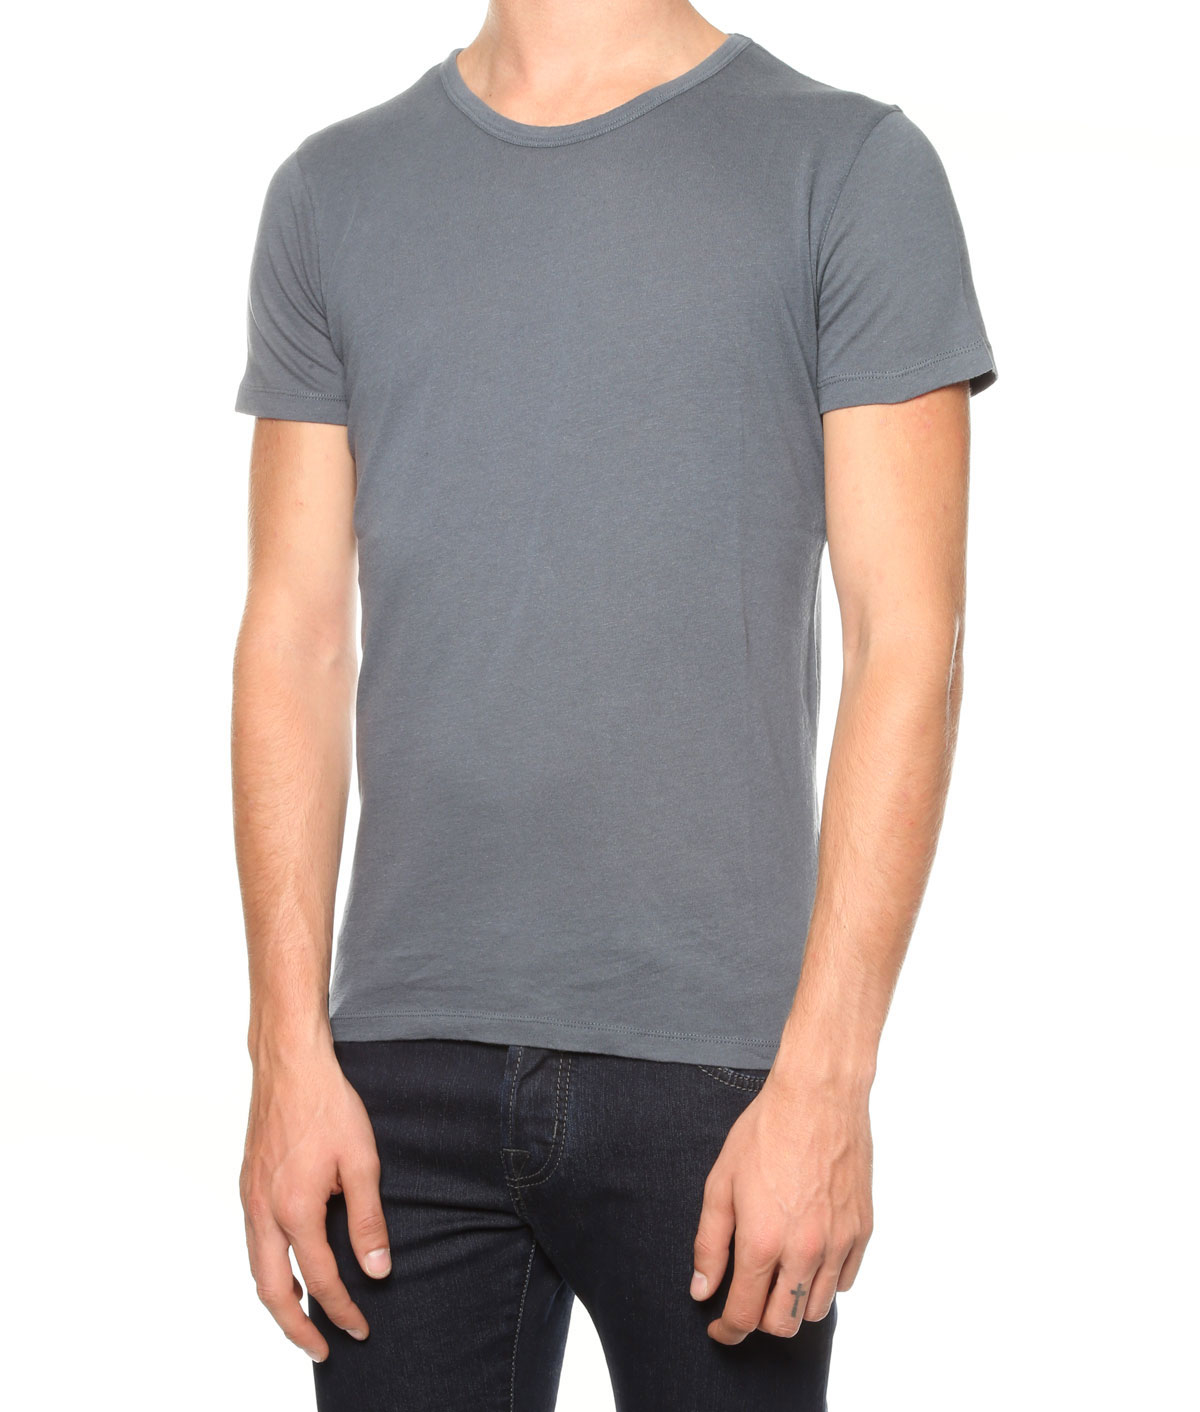 Majestic Filatures T Shirt In Gray For Men Lyst